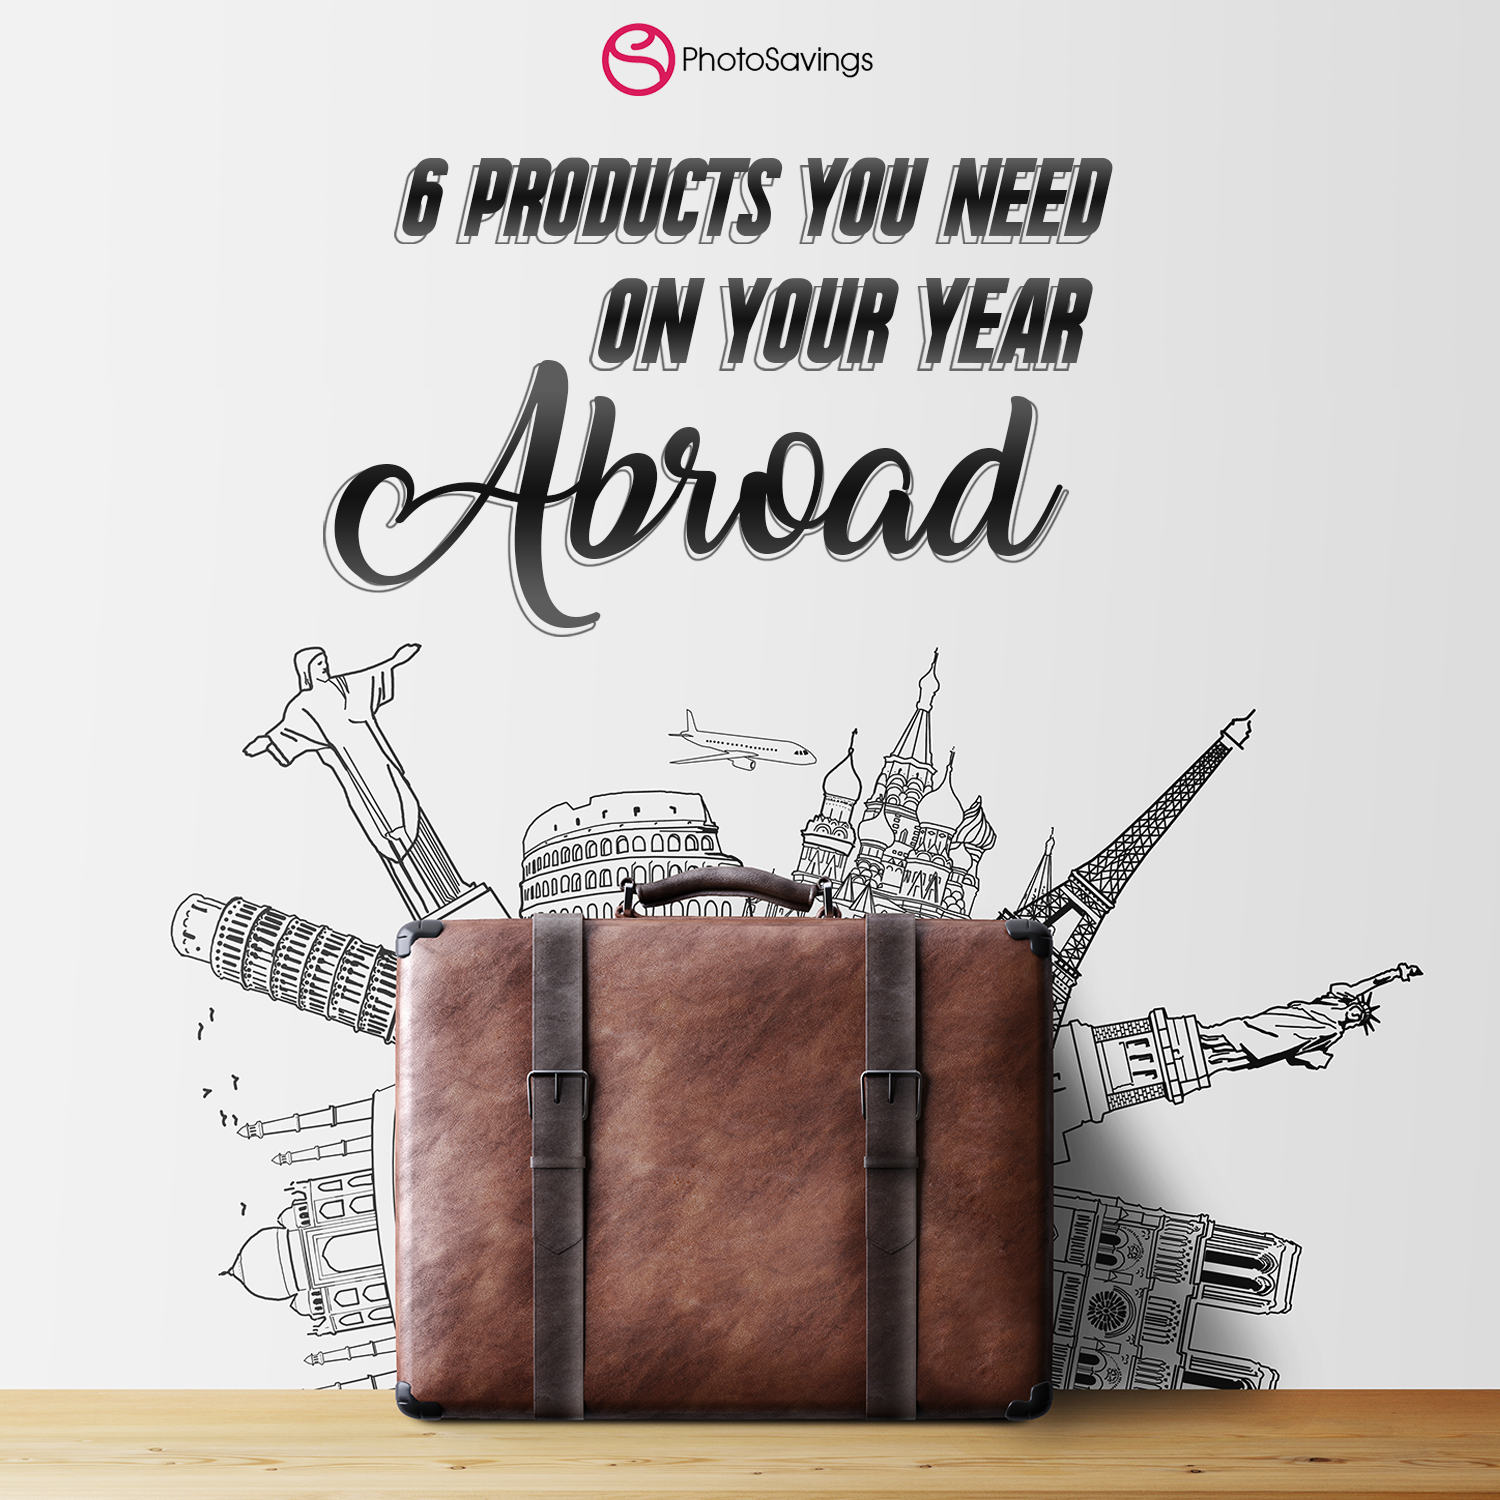 6 Photo Savings Products You Need to Prepare for Your Year Abroad